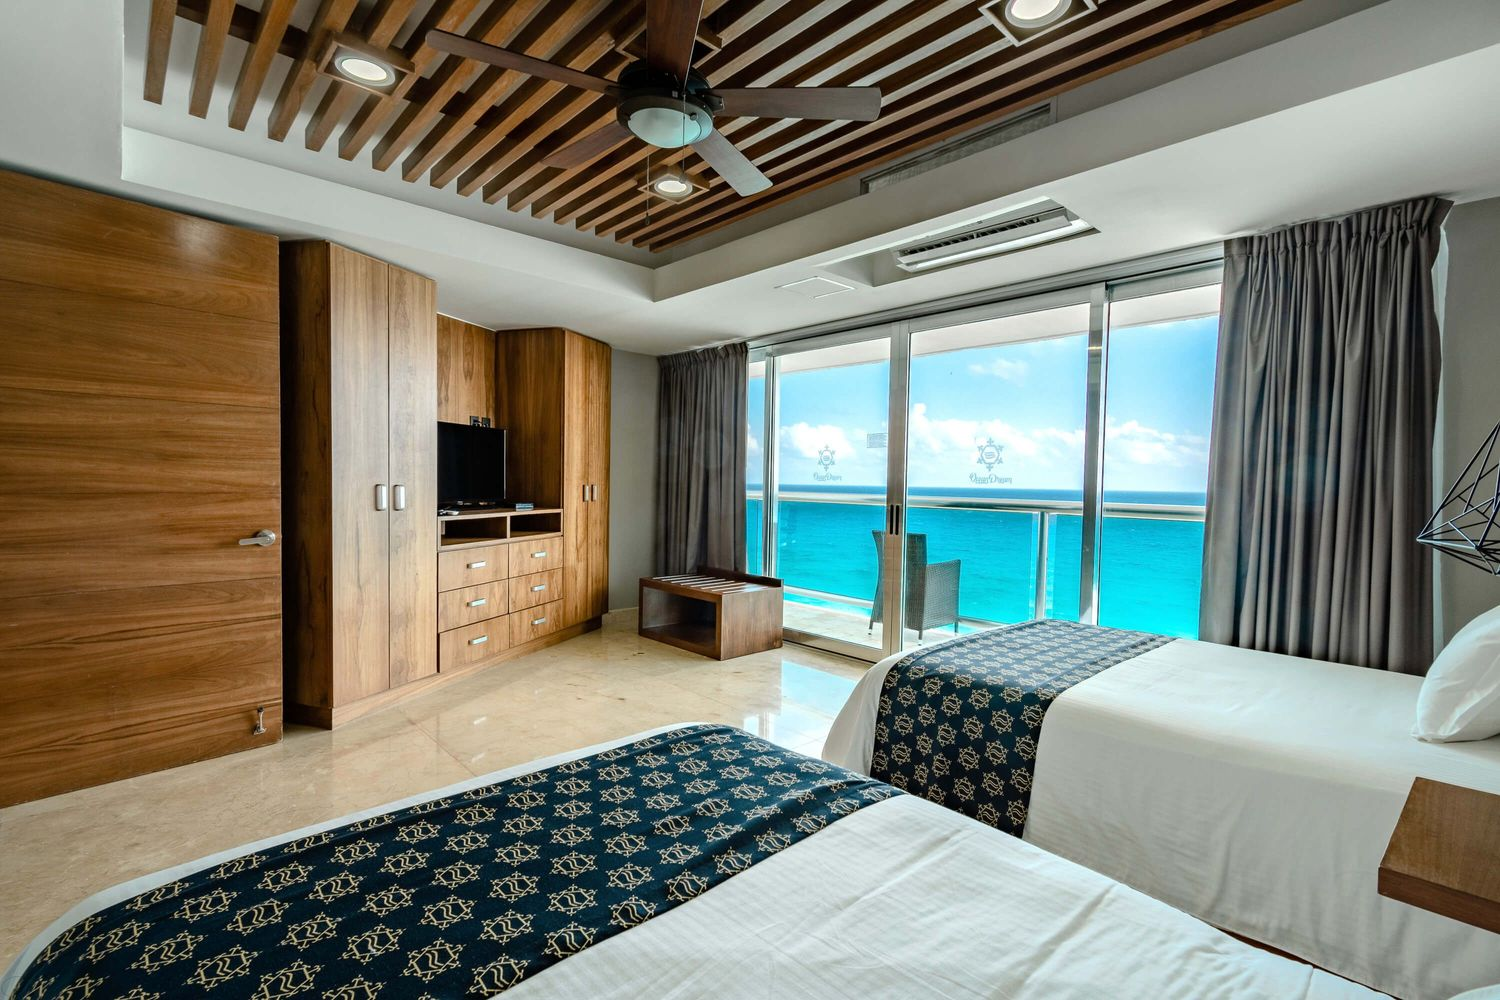 Ocean Dream Cancún by GuruHotel Suite